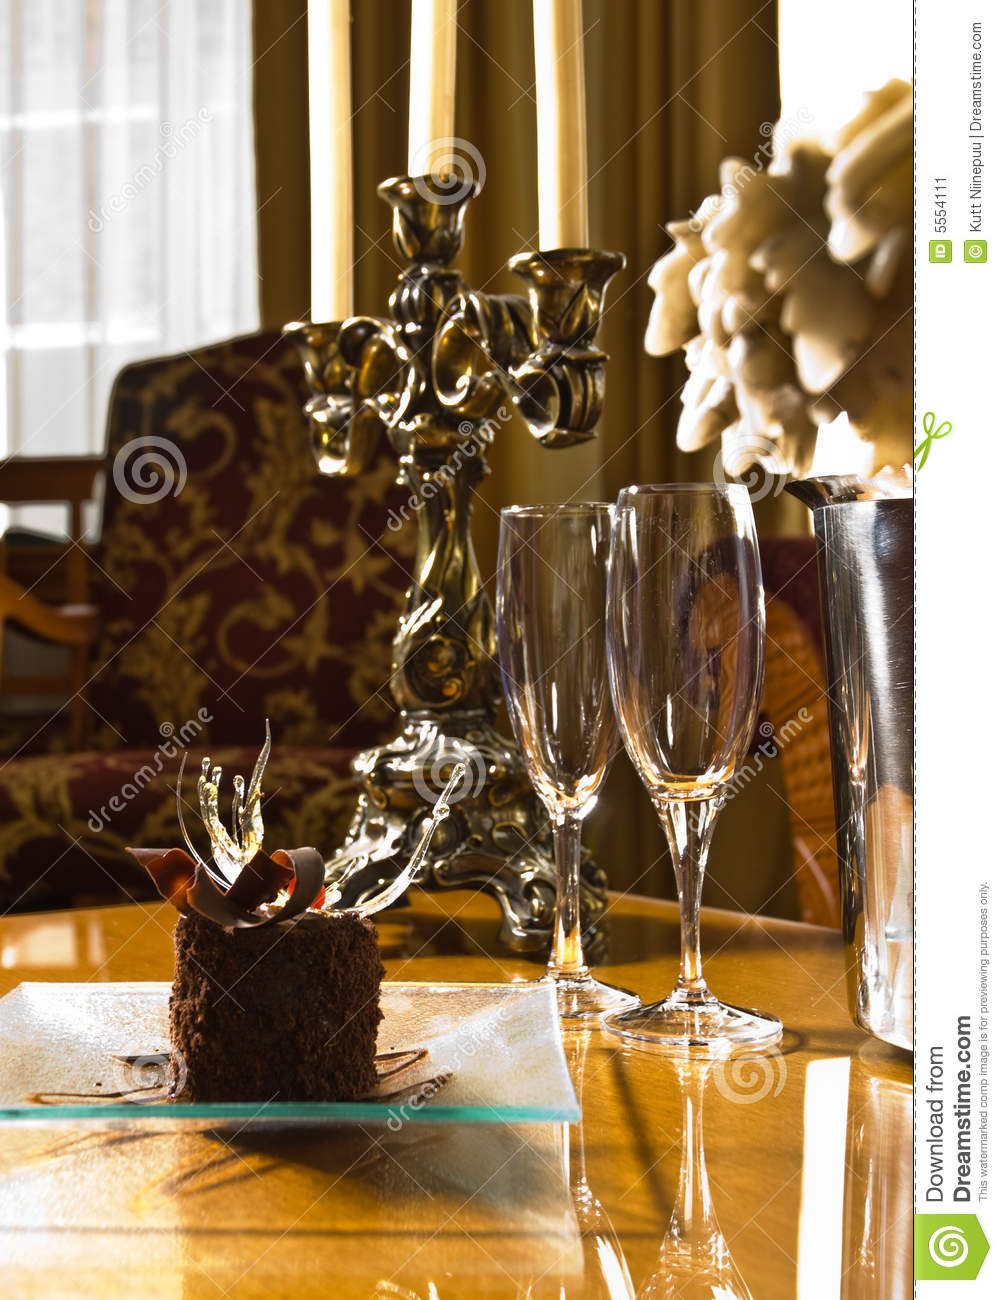 ... served on a glass saucer, elegant table setting in a luxurious hotel